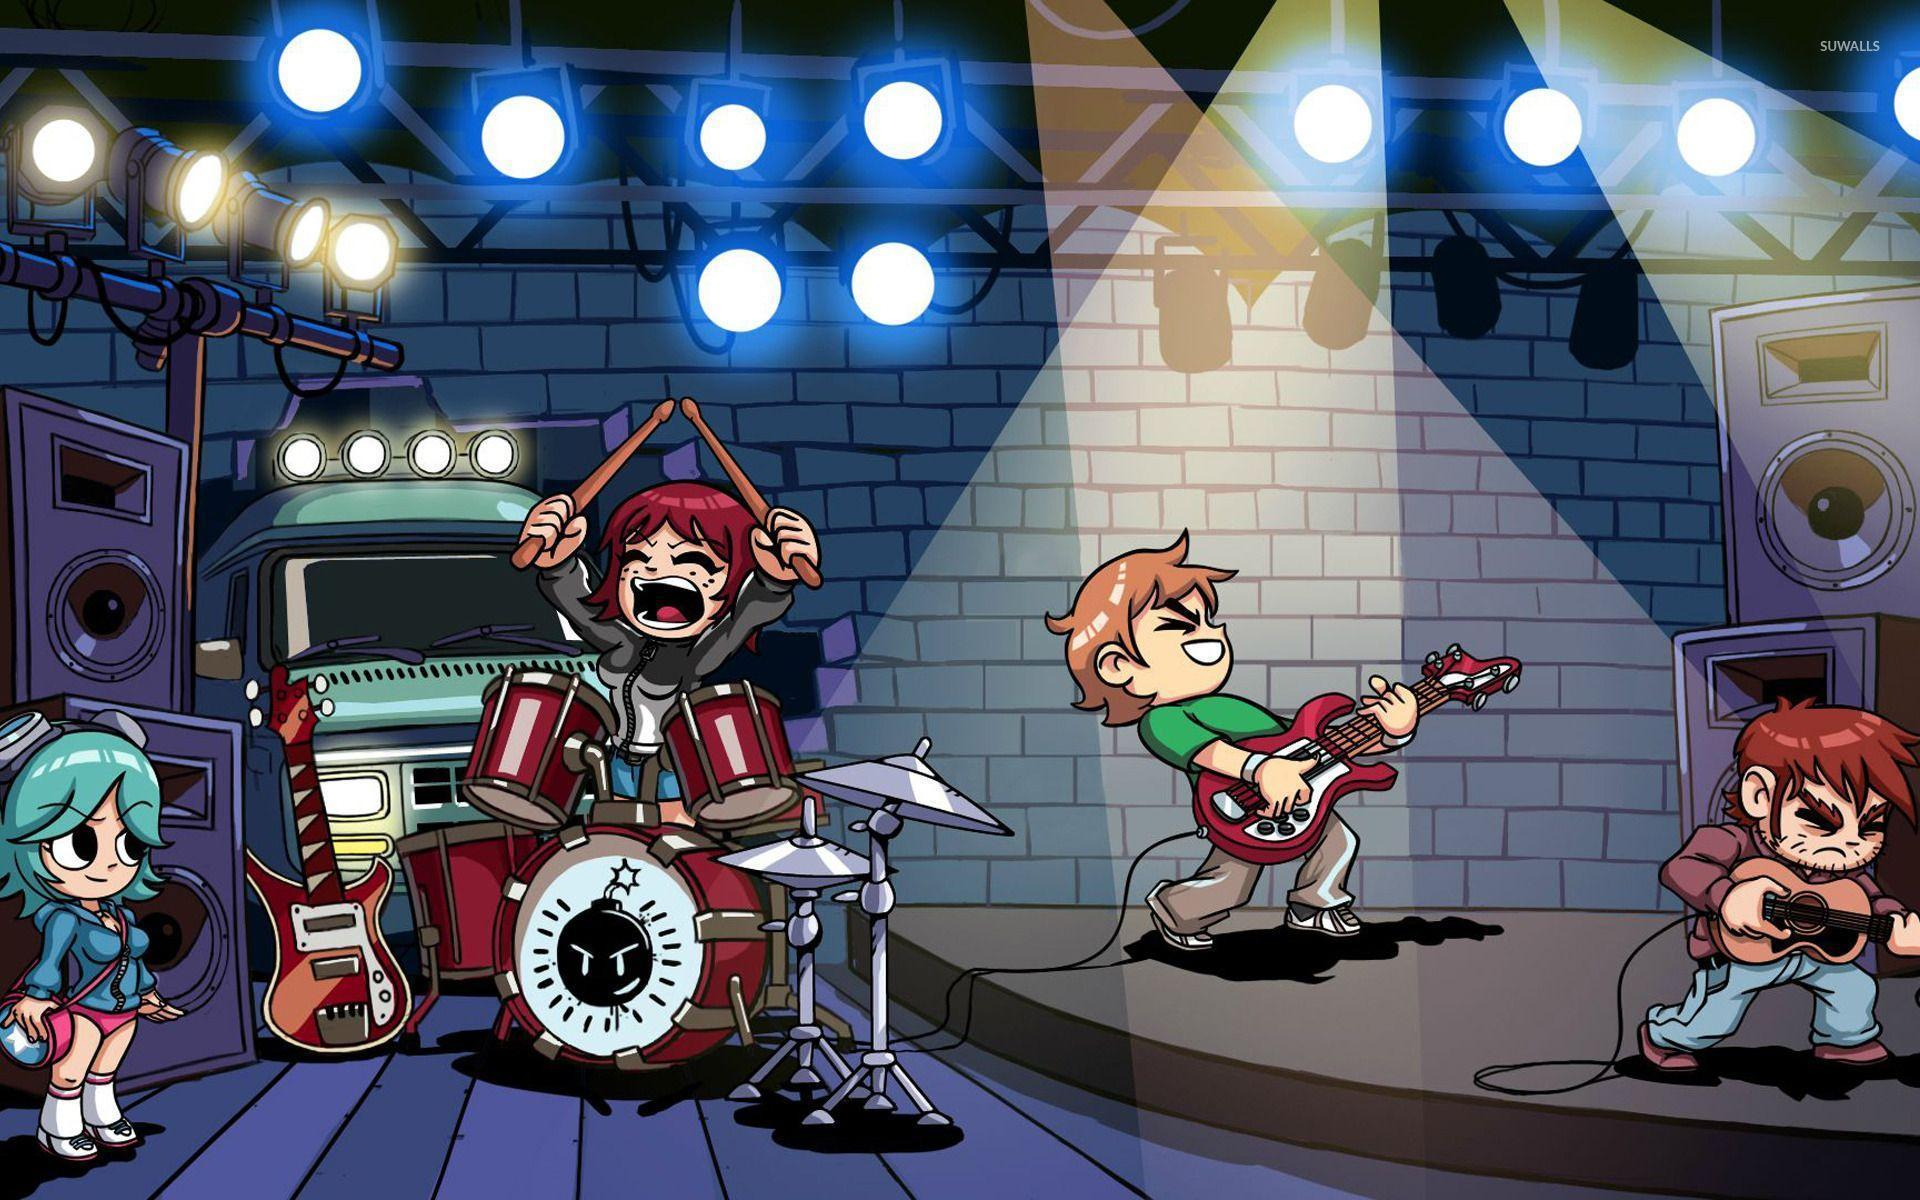 Scott Pilgrim The Game Wallpapers - Wallpaper Cave